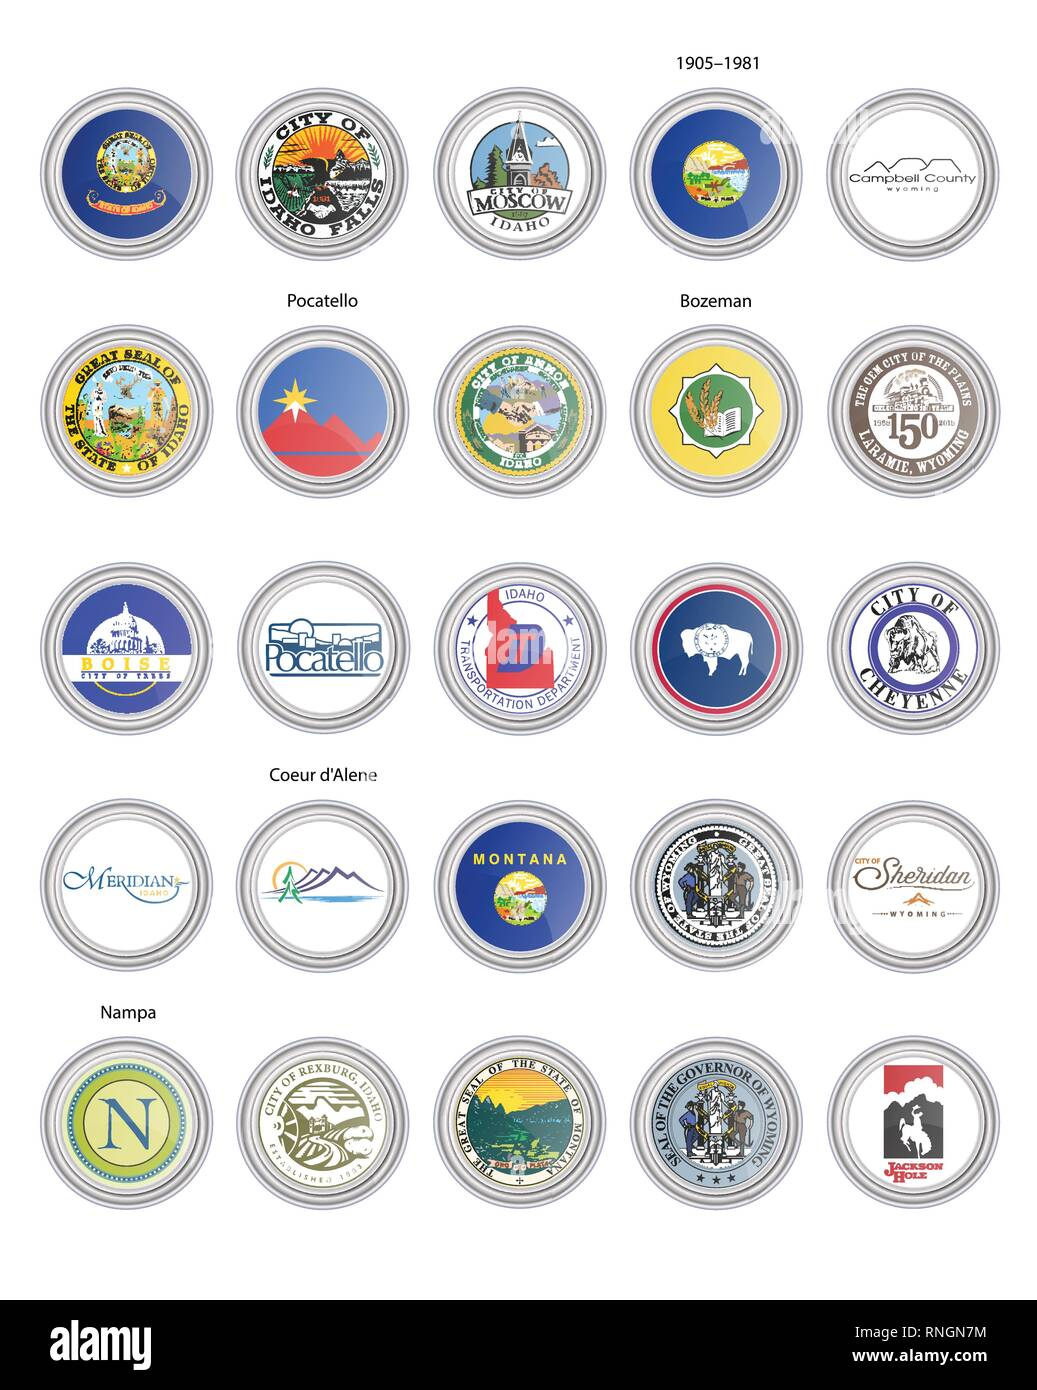 Set of vector icons. Flags and seals of Idaho, Montana and Wyoming states, USA. 3D illustration. - Stock Vector